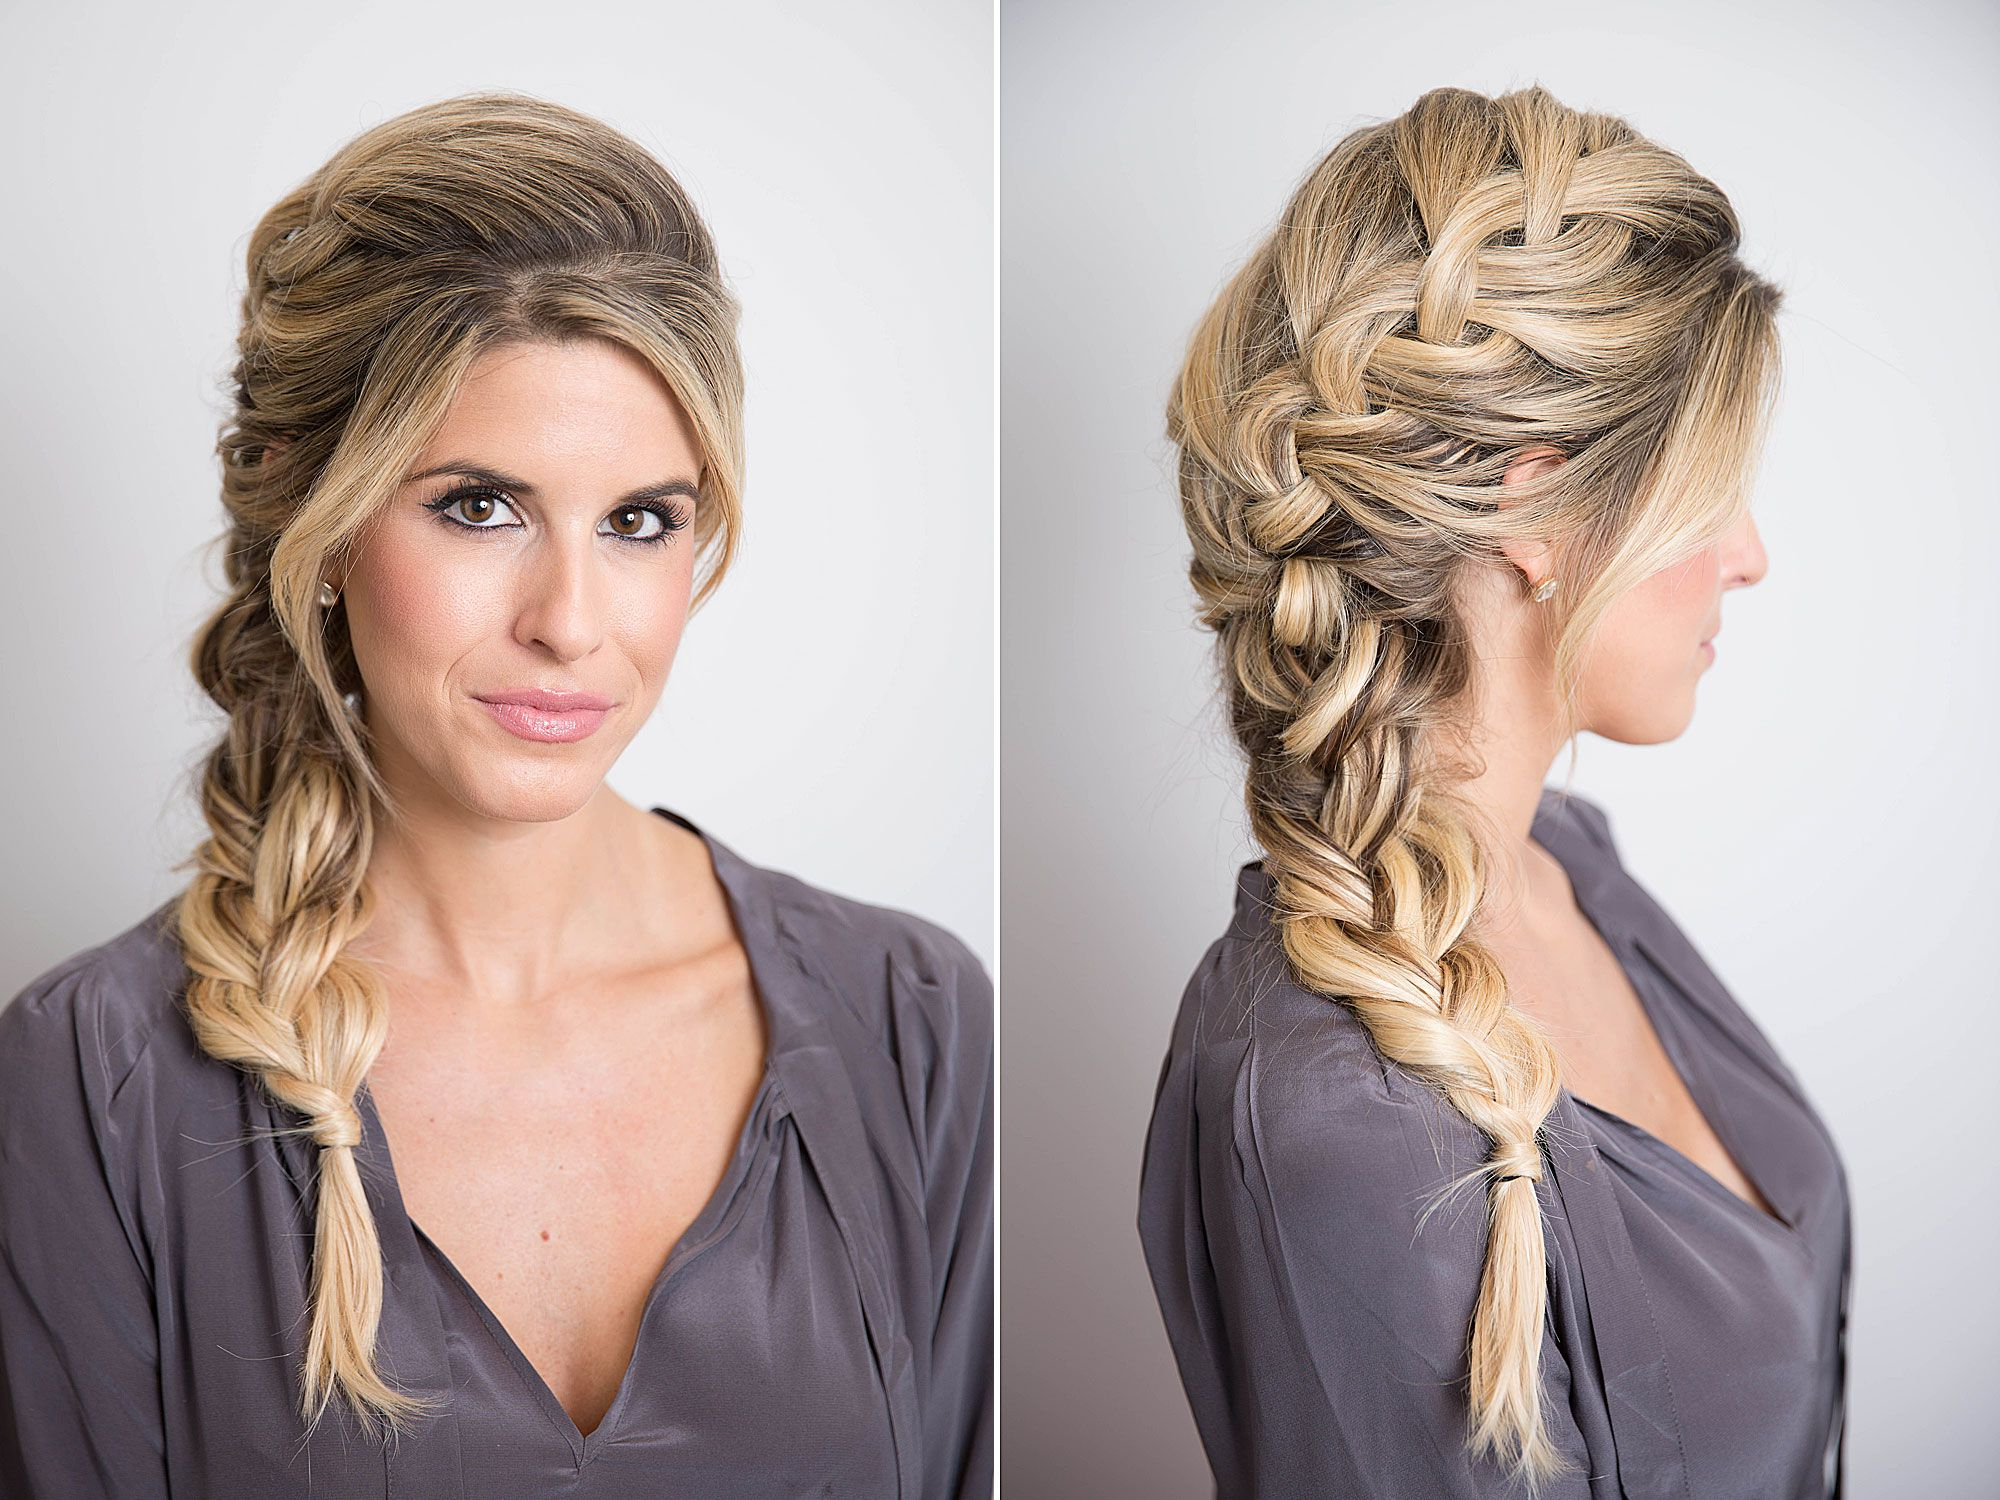 17 Braided Hairstyles With Gifs – How To Do Every Type Of Braid In Most Popular Braided And Wrapped Hairstyles (View 1 of 20)